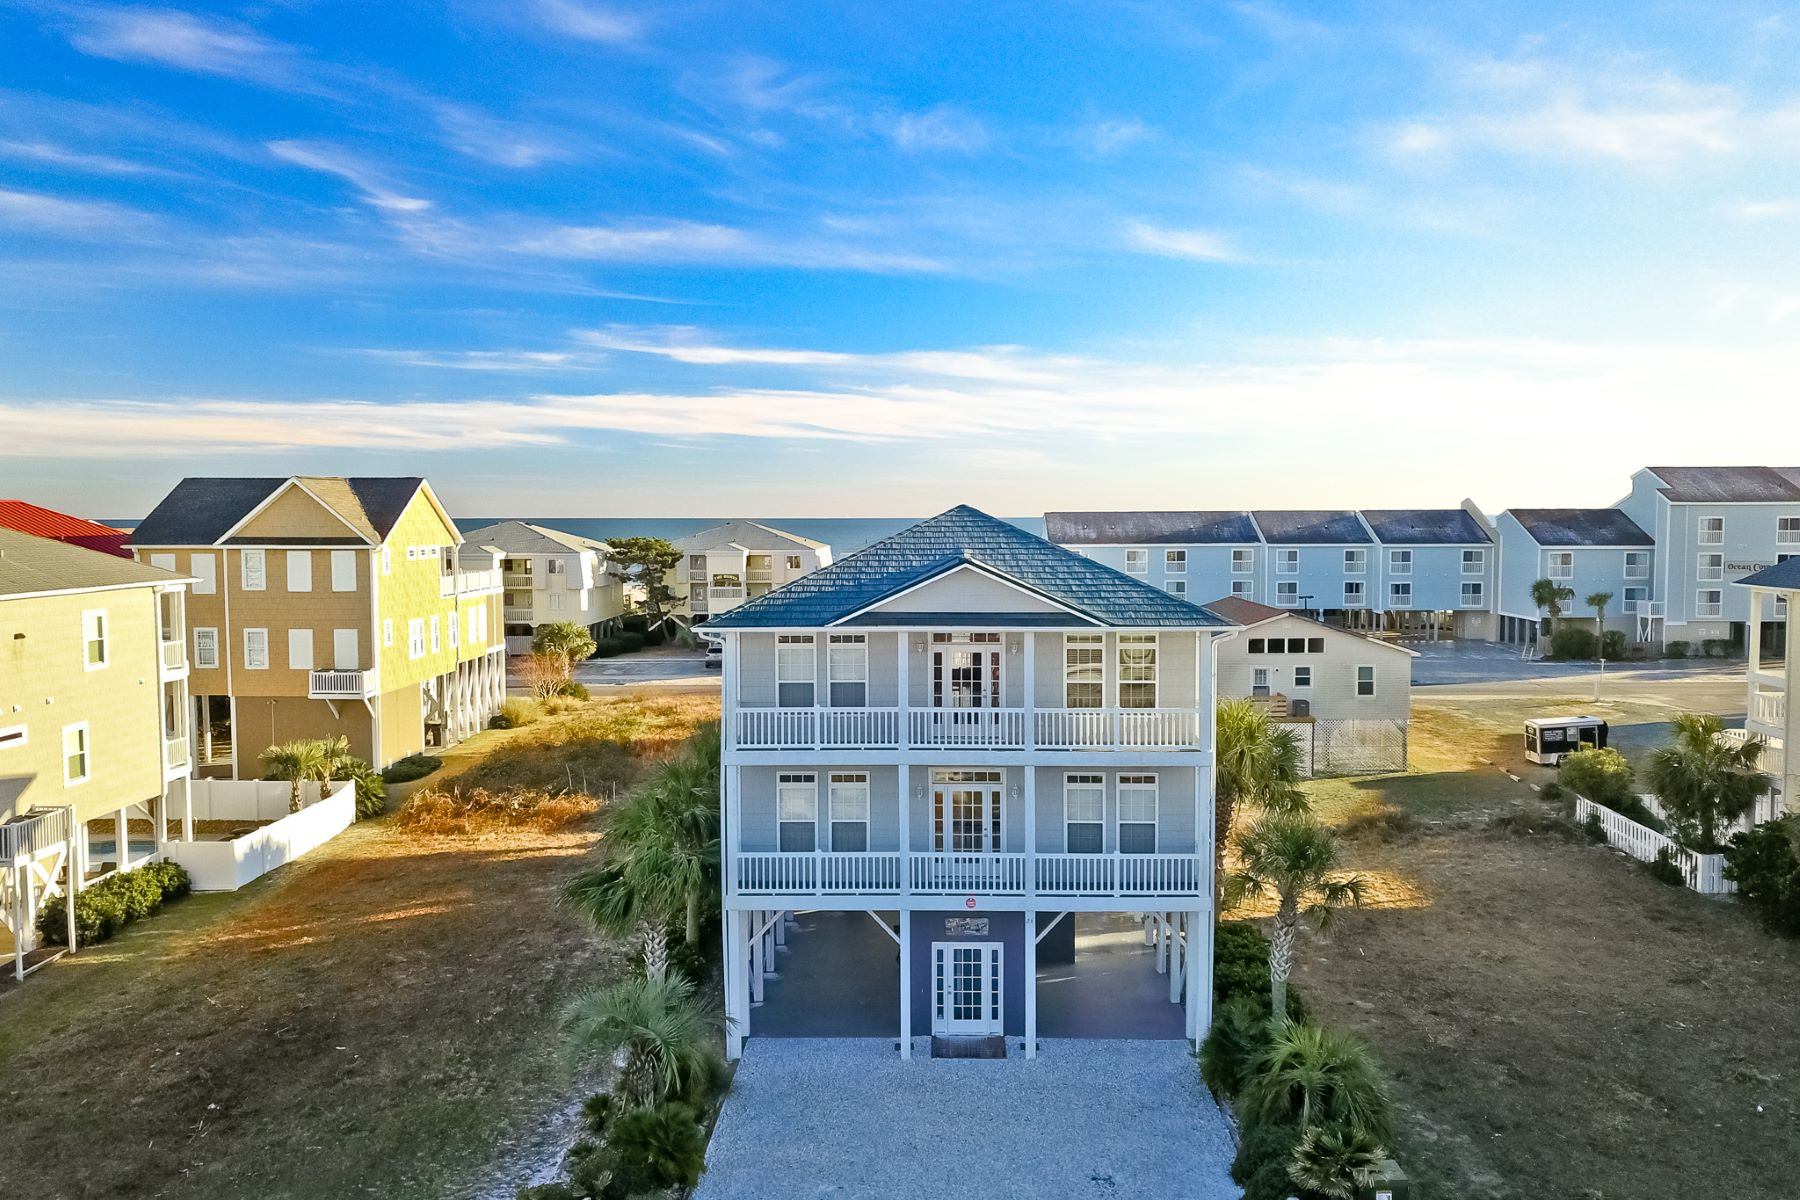 Single Family Home for Sale at Tranquil Oceanview Escape 26 E. Second Street, Ocean Isle Beach, North Carolina, 28469 United States